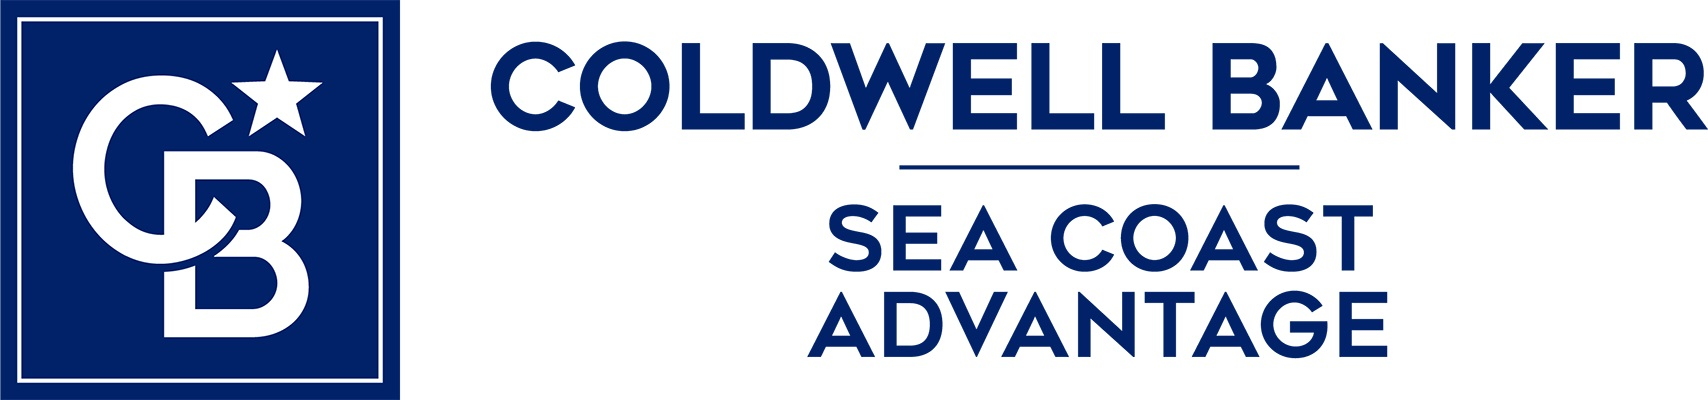 Jane Elmore - Coldwell Banker Sea Coast Advantage Realty Logo